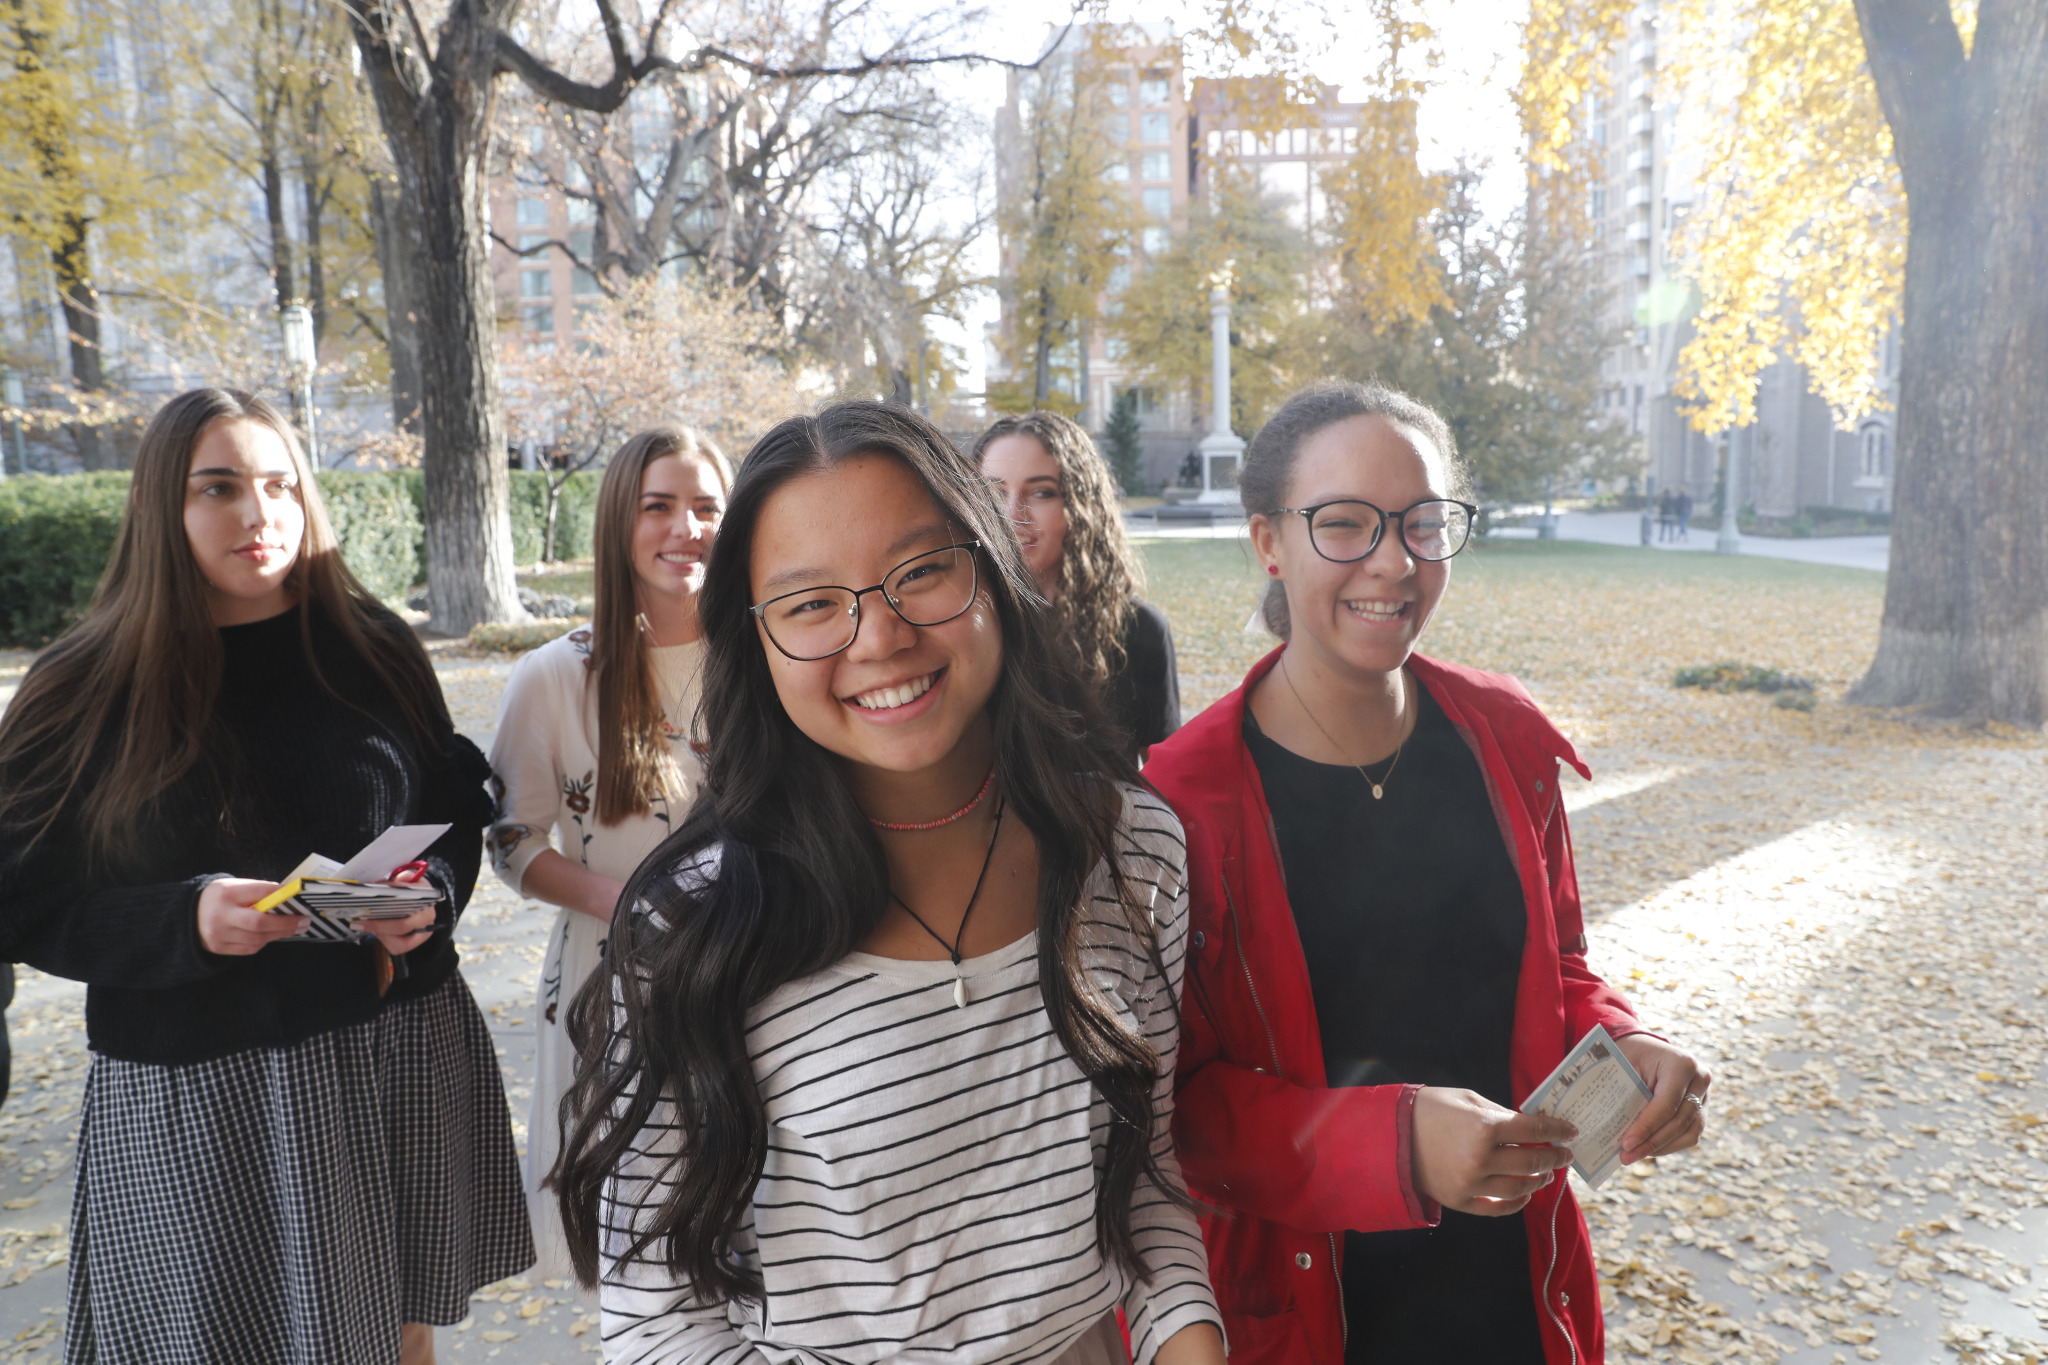 Latter-day Saint youth arrive at the Tabernacle on Temple Square in Salt Lake City, Utah, on Nov. 17, 2019, to participate in what was described as the largest Face to Face event ever hosted by the Church. The broadcast introduced a new Children and Youth initiative that will replace the Church's existing children and youth programs on January 1, 2020.